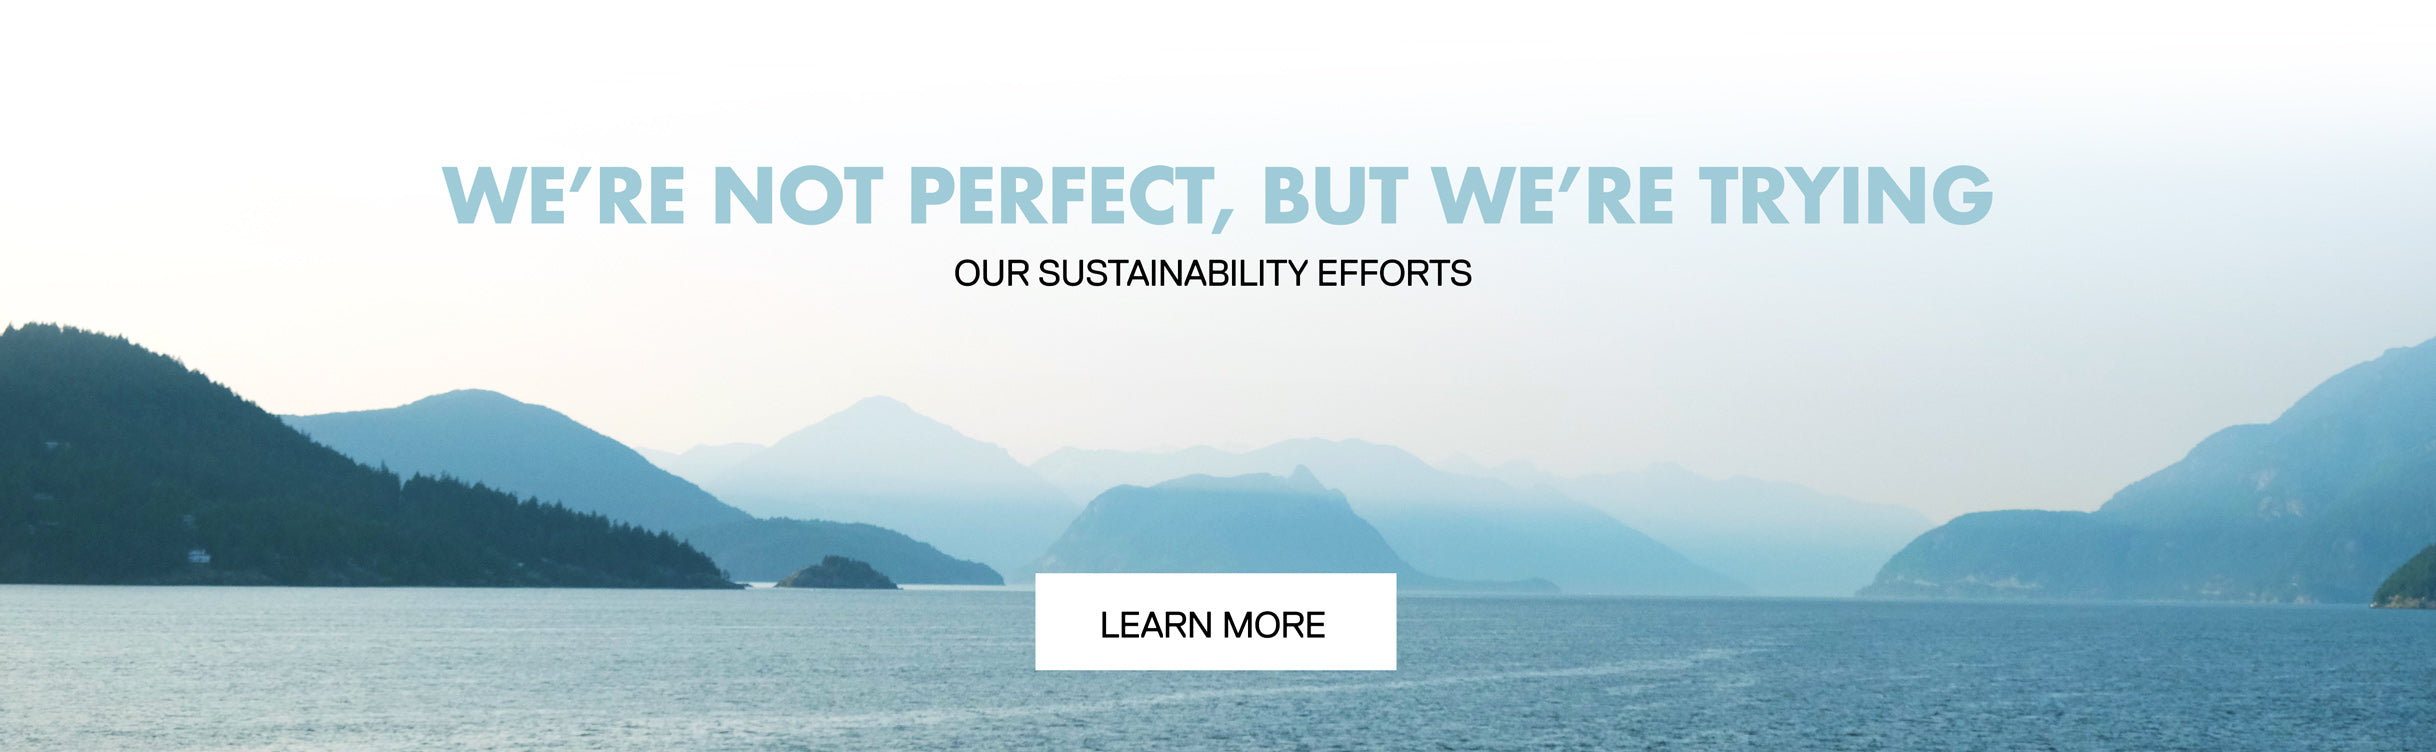 Sustainability Page